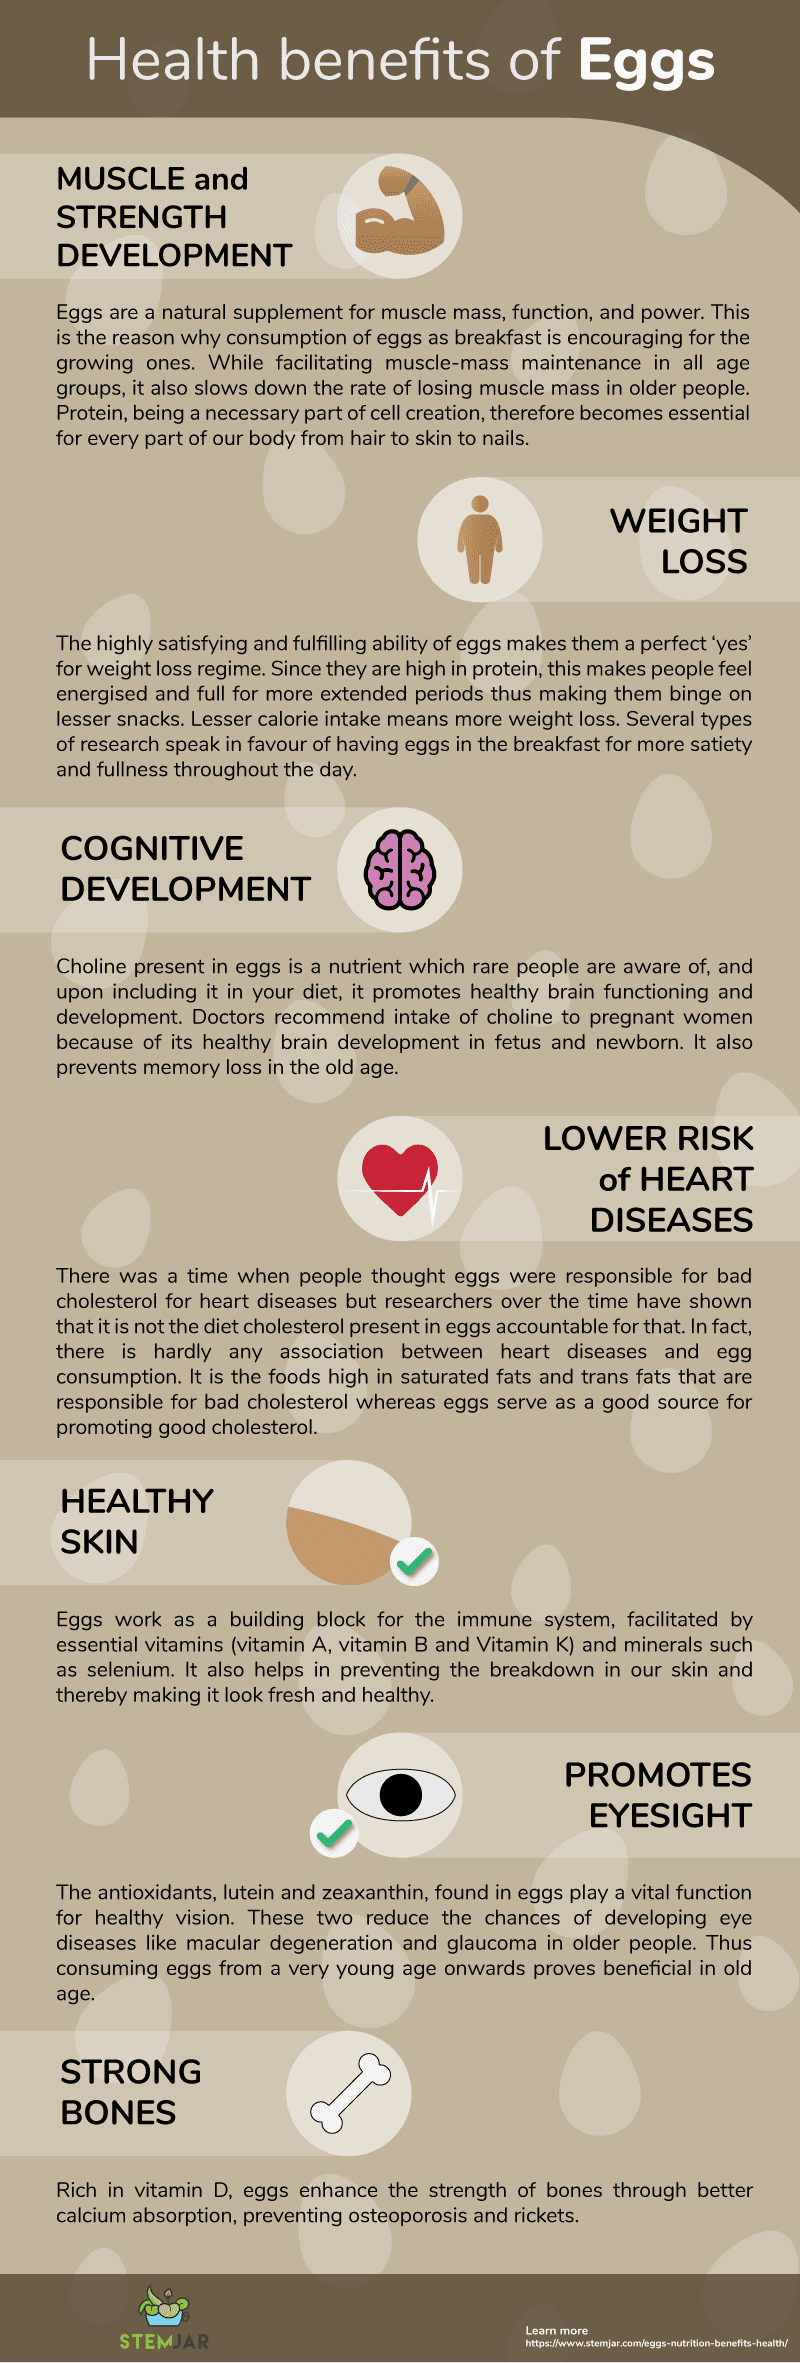 Health benefits of egg and egg nutrition infographic